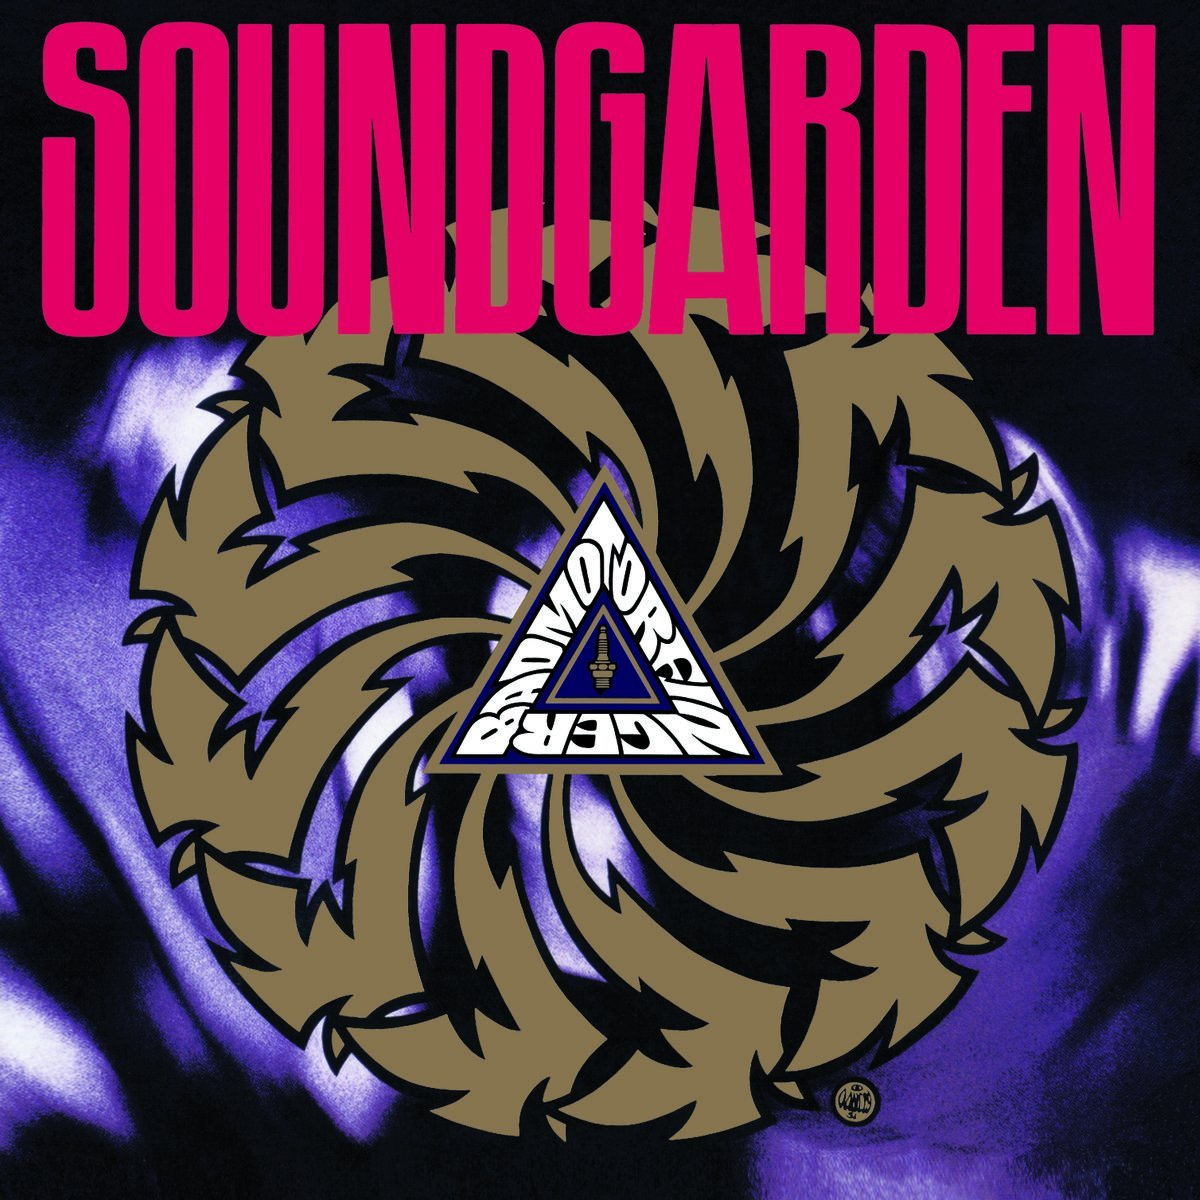 SOUNDGARDEN - BADMOTORFINGER (CD)